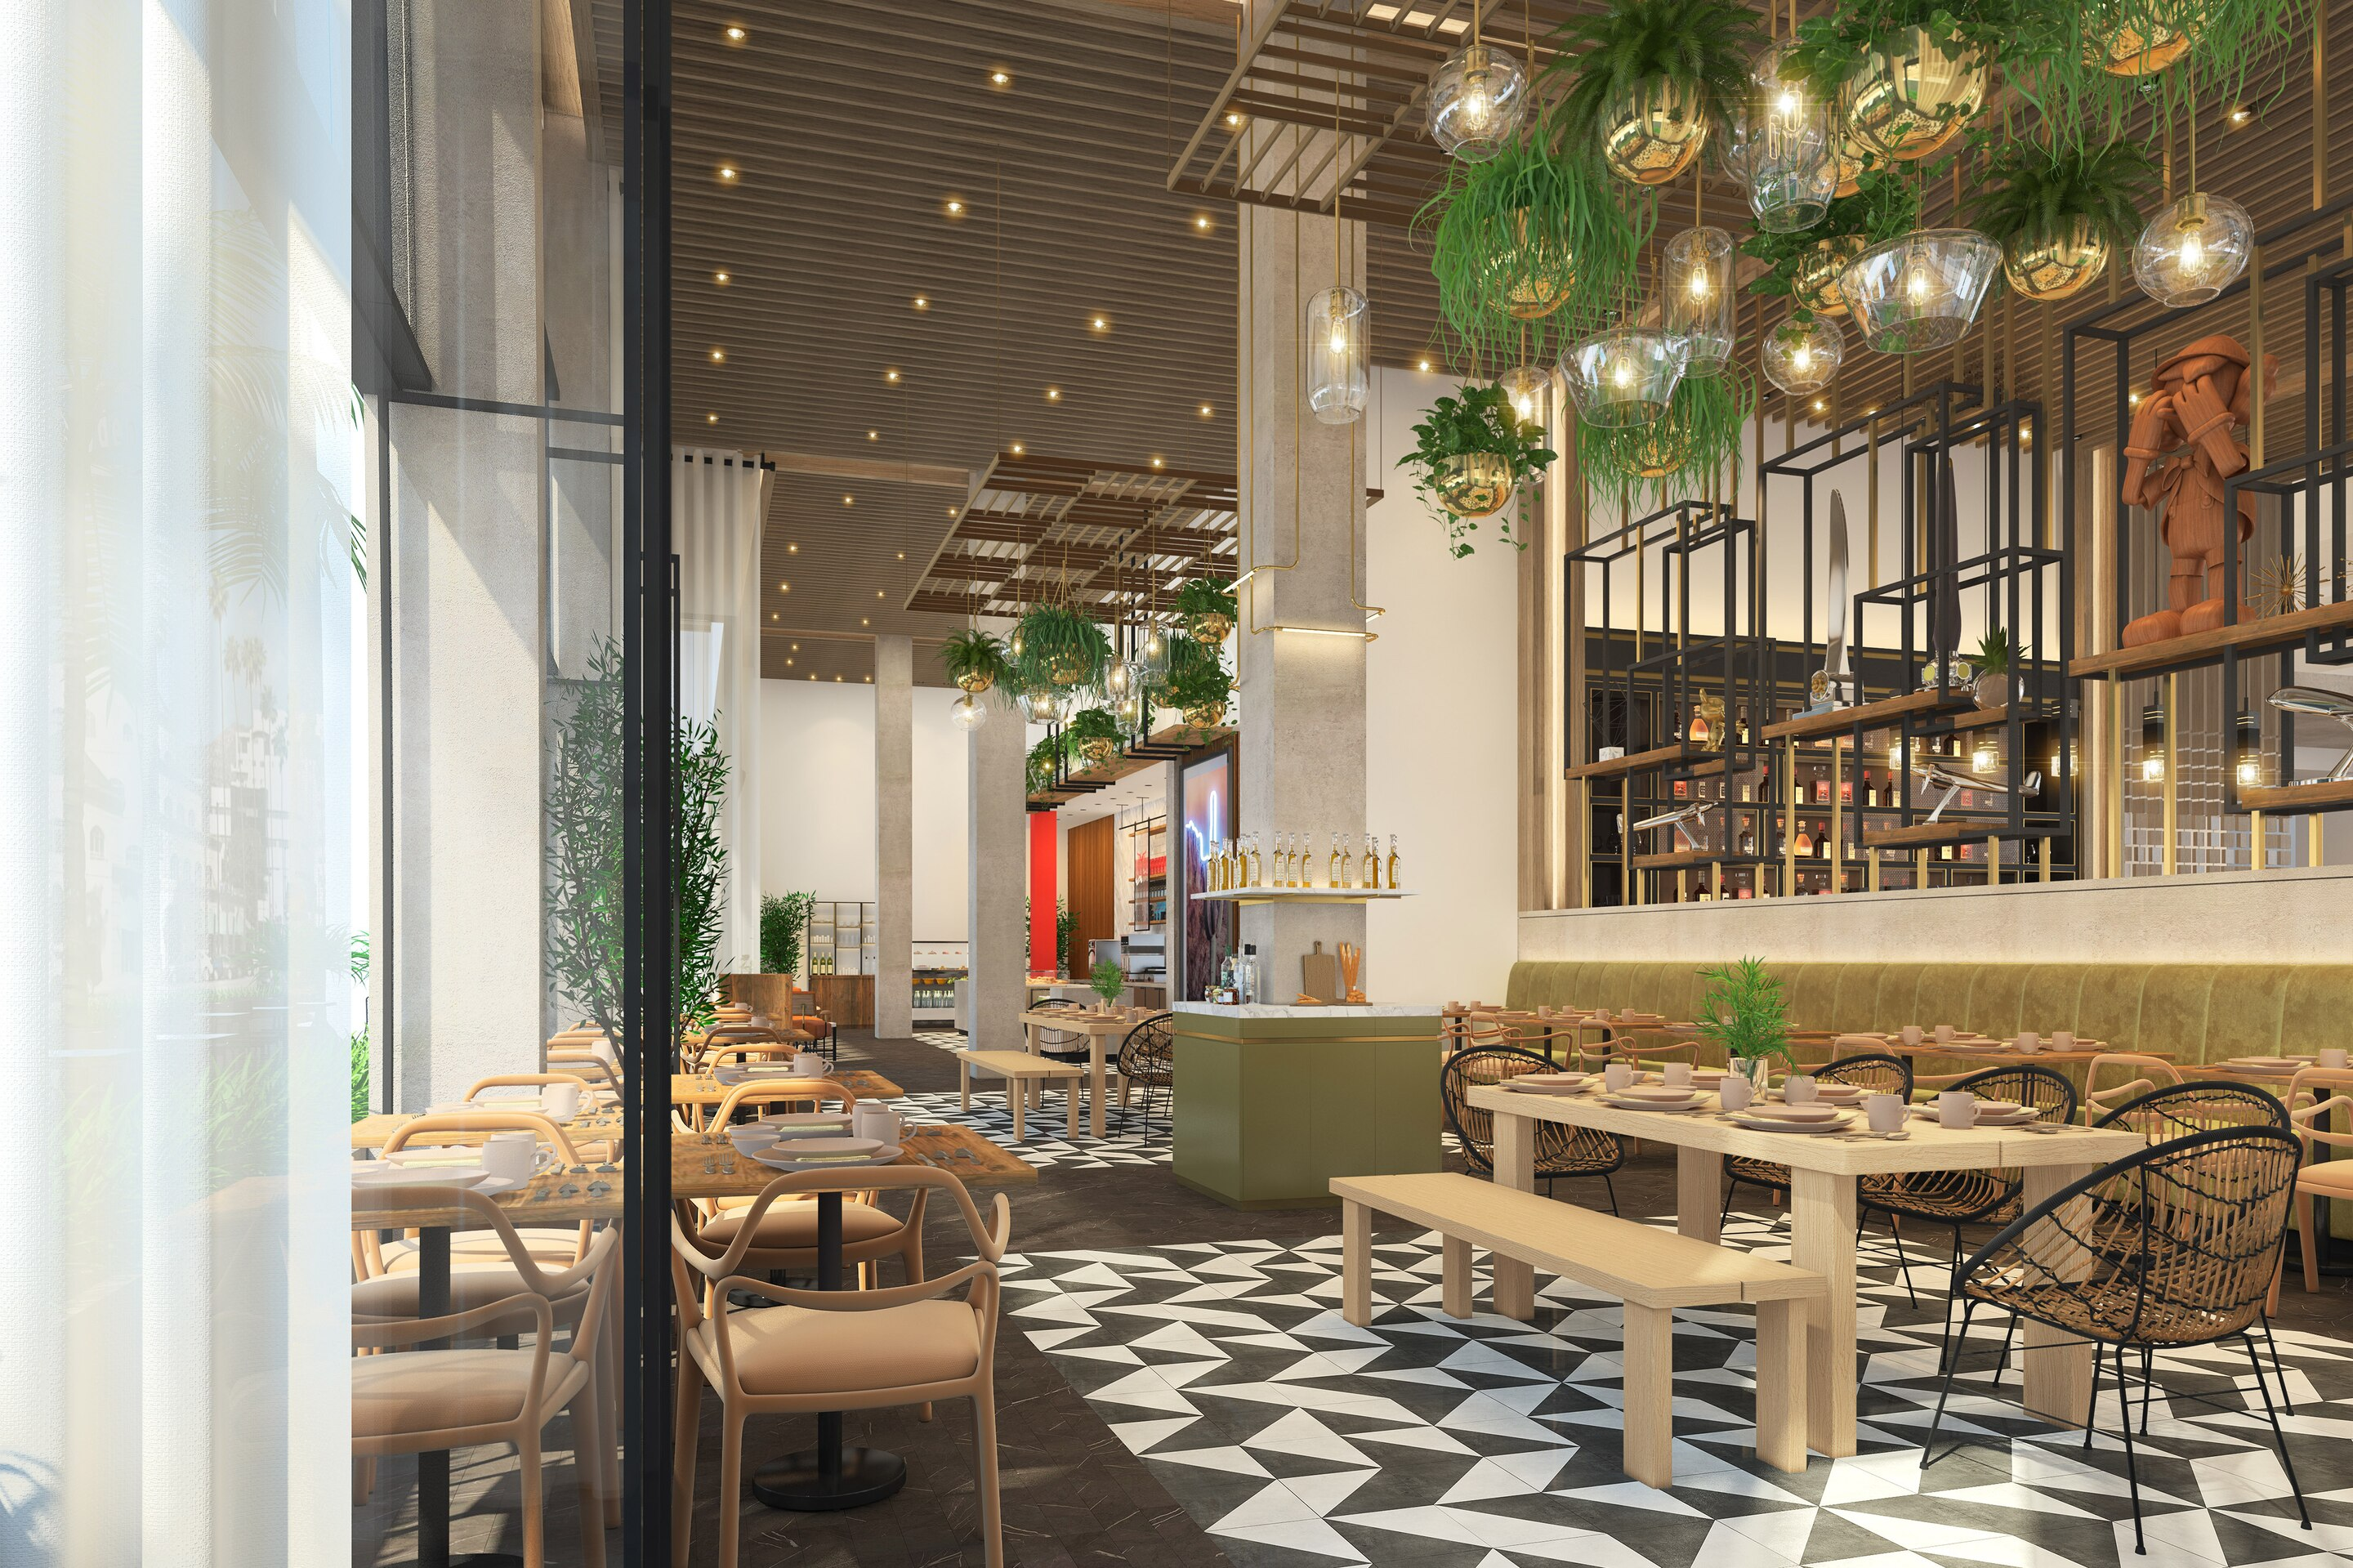 A rendering of a lobby hotel restaurant and bar area.